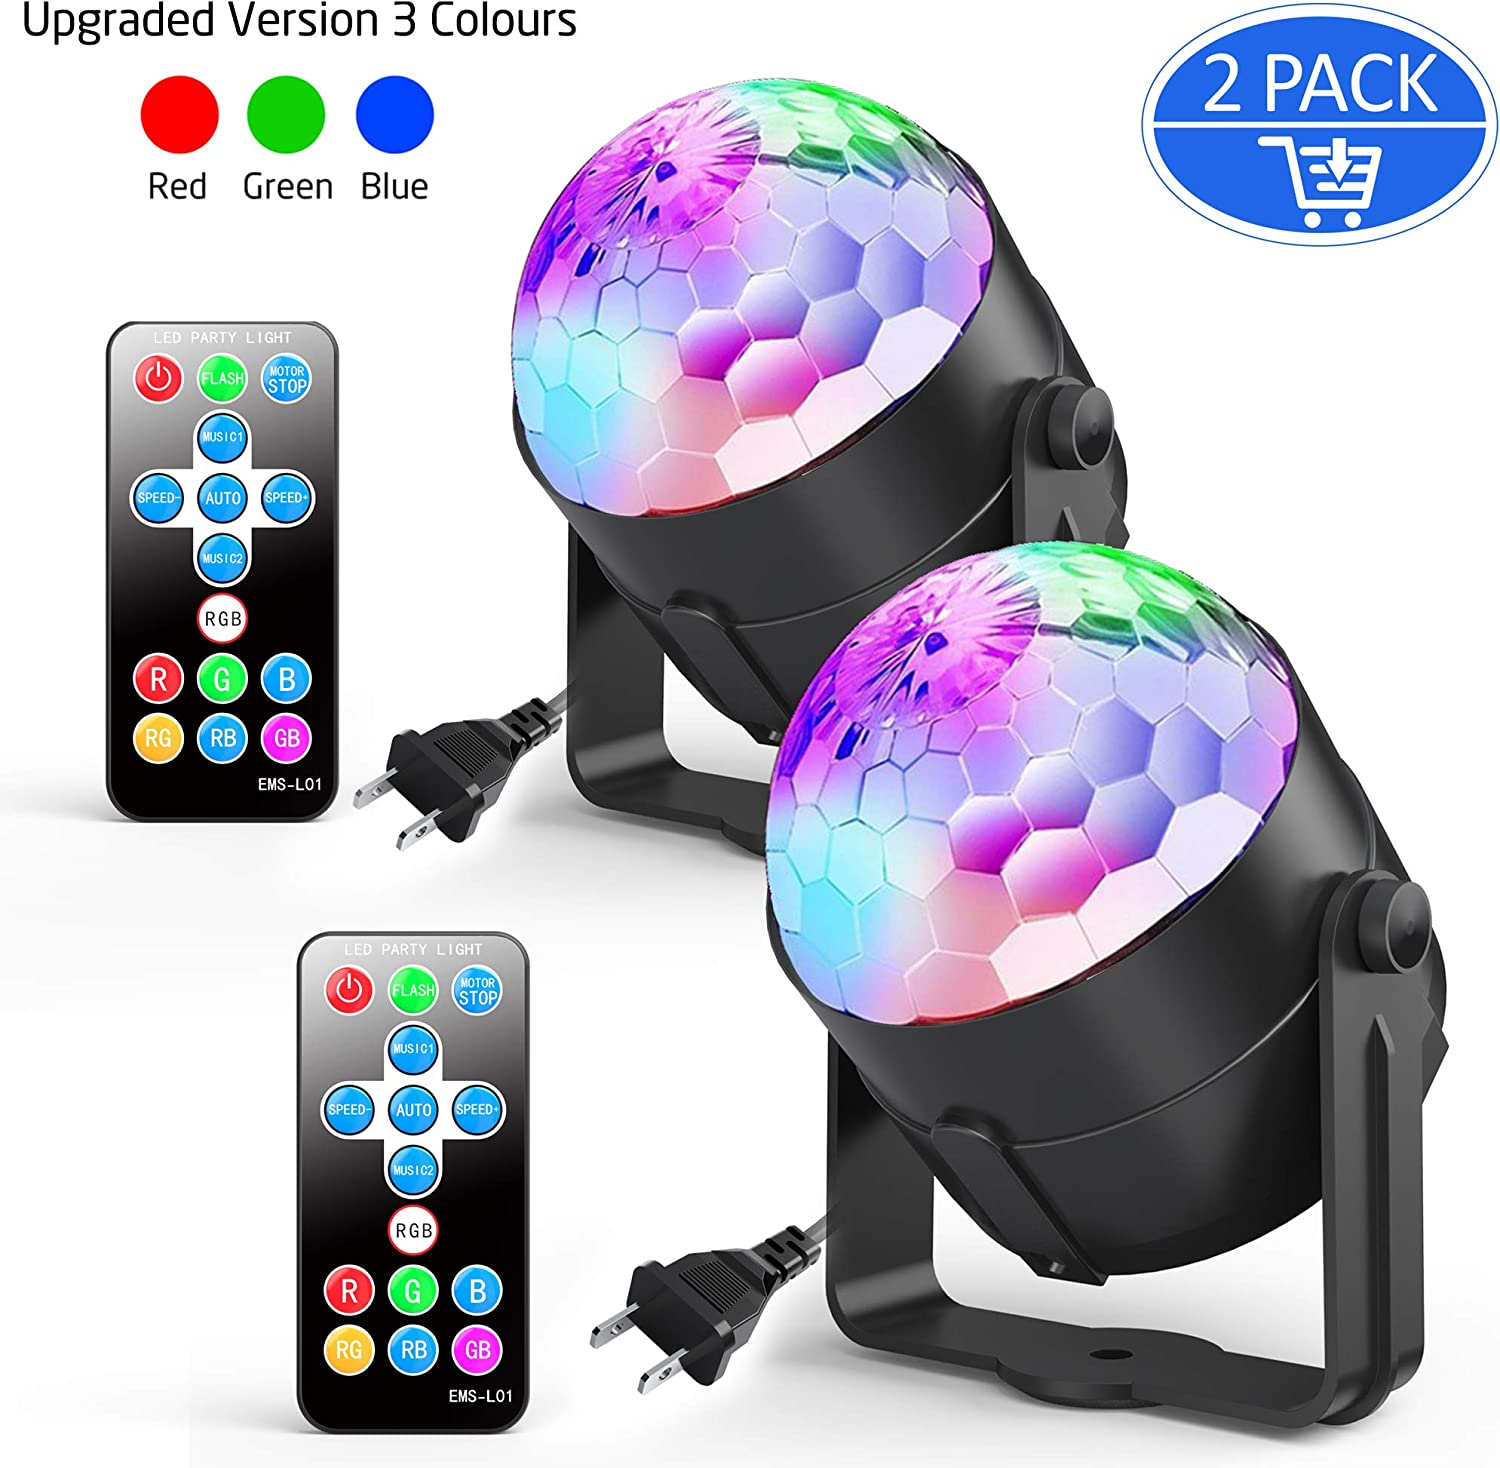 2-Pack Ezire Sound Activated Party Lights with Remote Control Dj Lighting, RGB Disco Ball, Strobe Lamp 5W 7 Modes LED Stage Lights for Home Outdoor Holidays Dance Parties